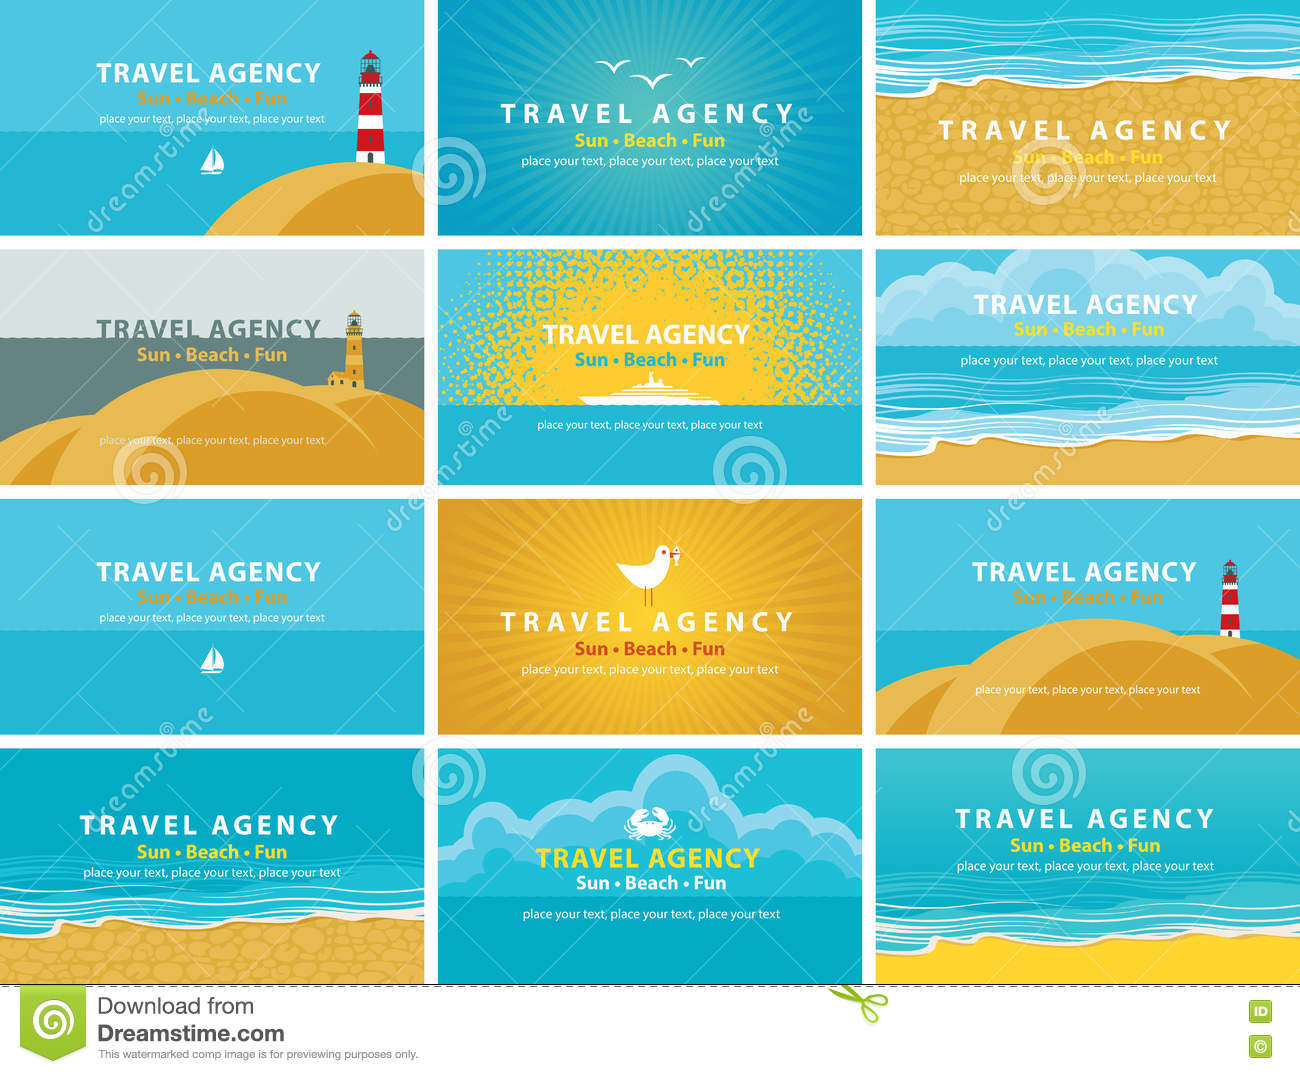 Business Cards For Travel Agency Stock Vector - Image: 73514152